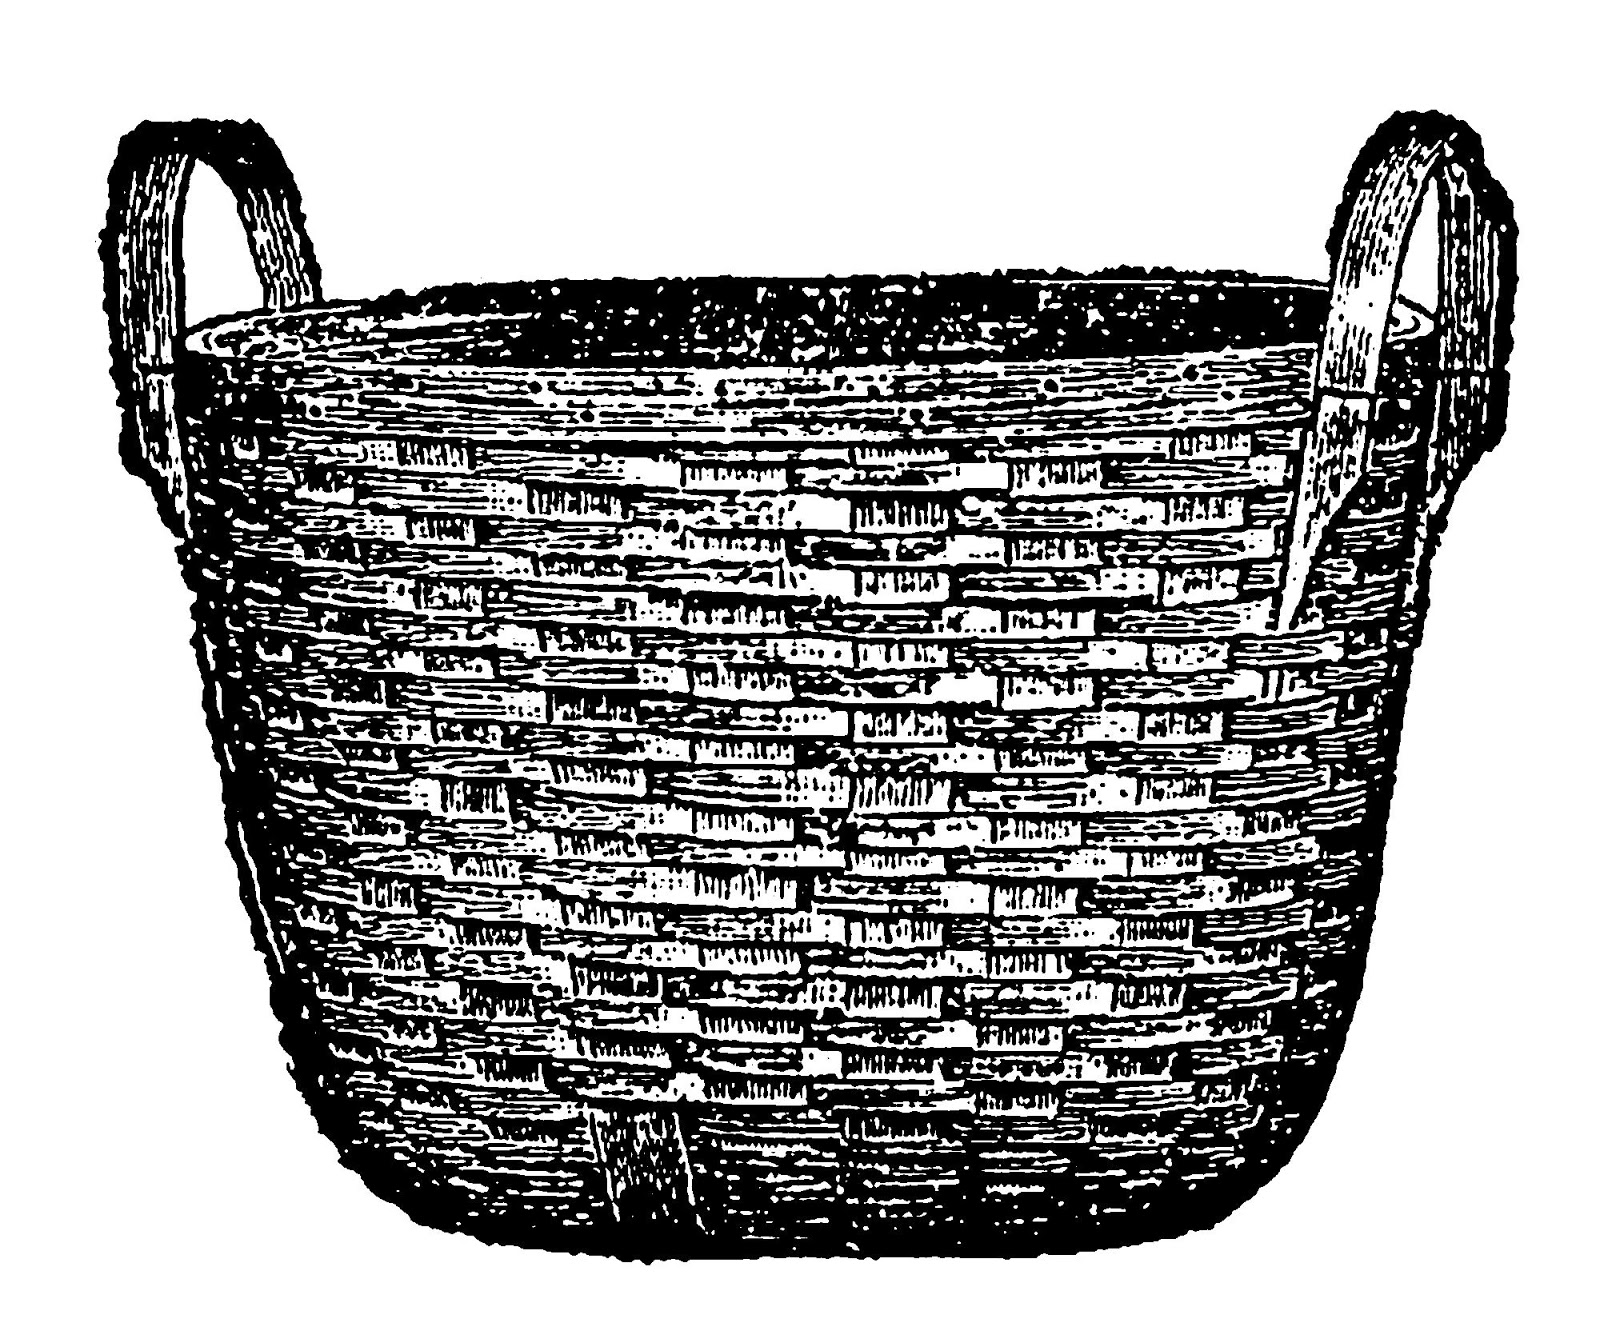 digital stamp design laundry wood woven basket illustrations jpg 1600x1319 vintage laundry basket clipart [ 1600 x 1319 Pixel ]